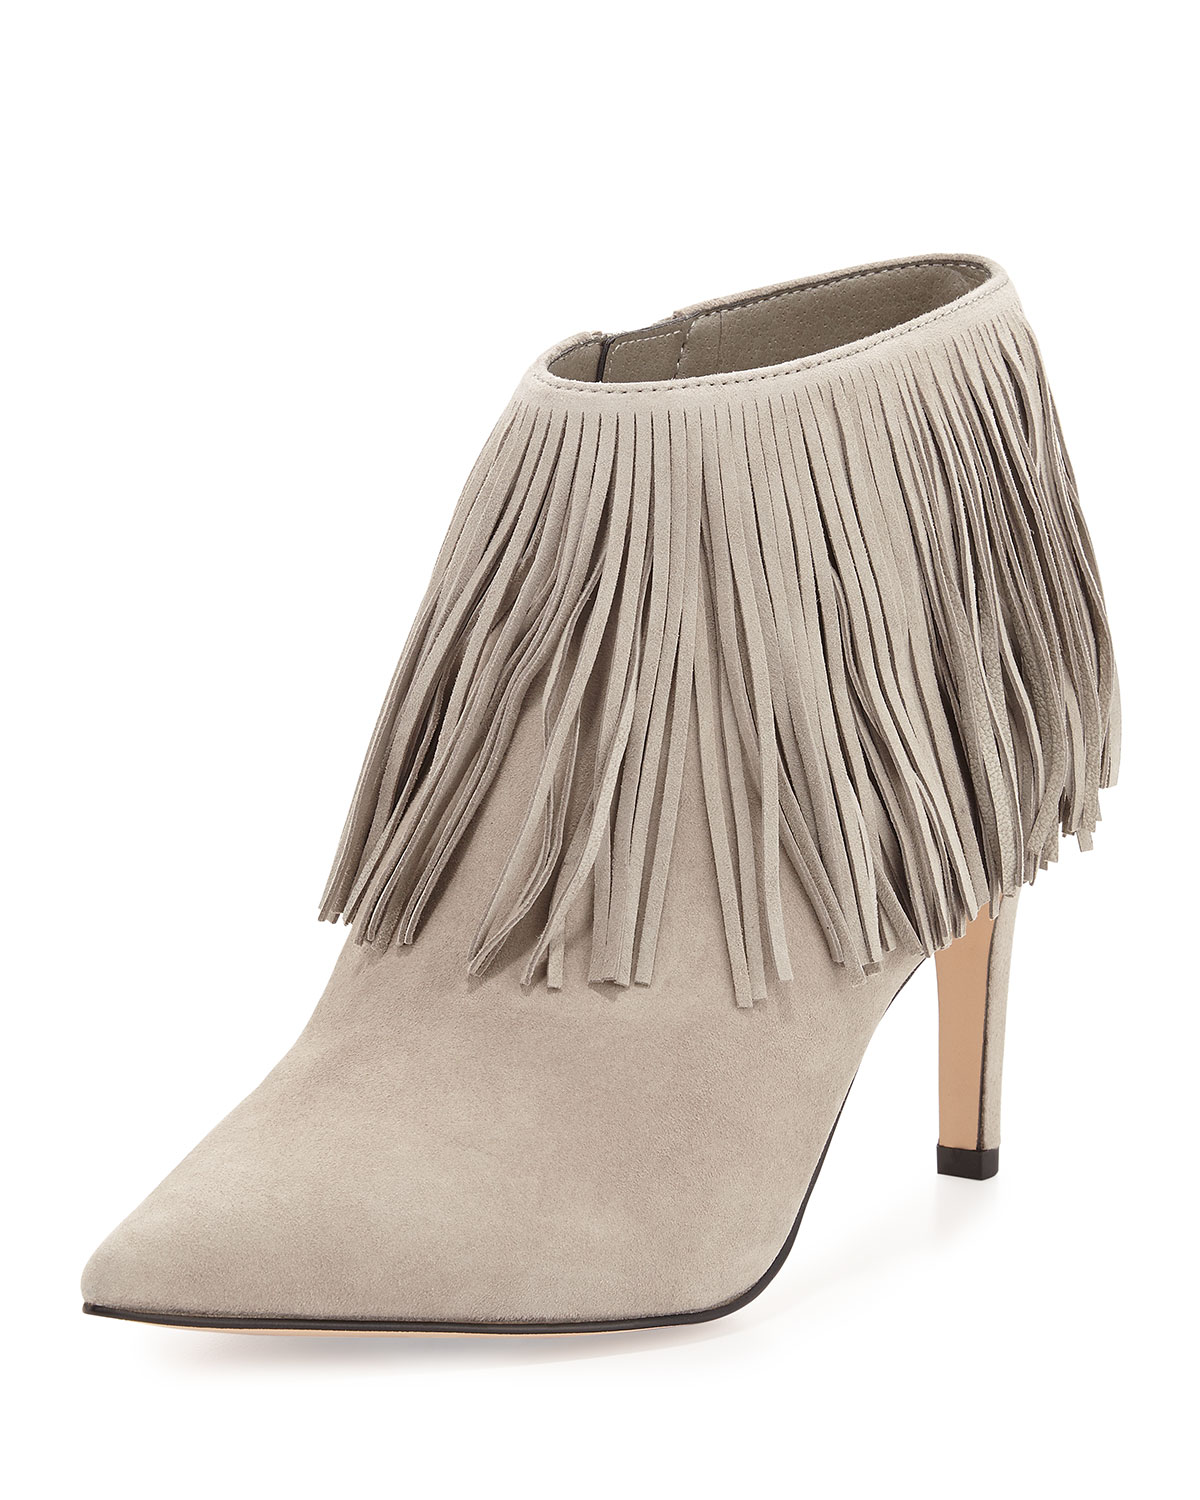 96ff6be8c Sam Edelman Kandice Fringe Ankle Boot